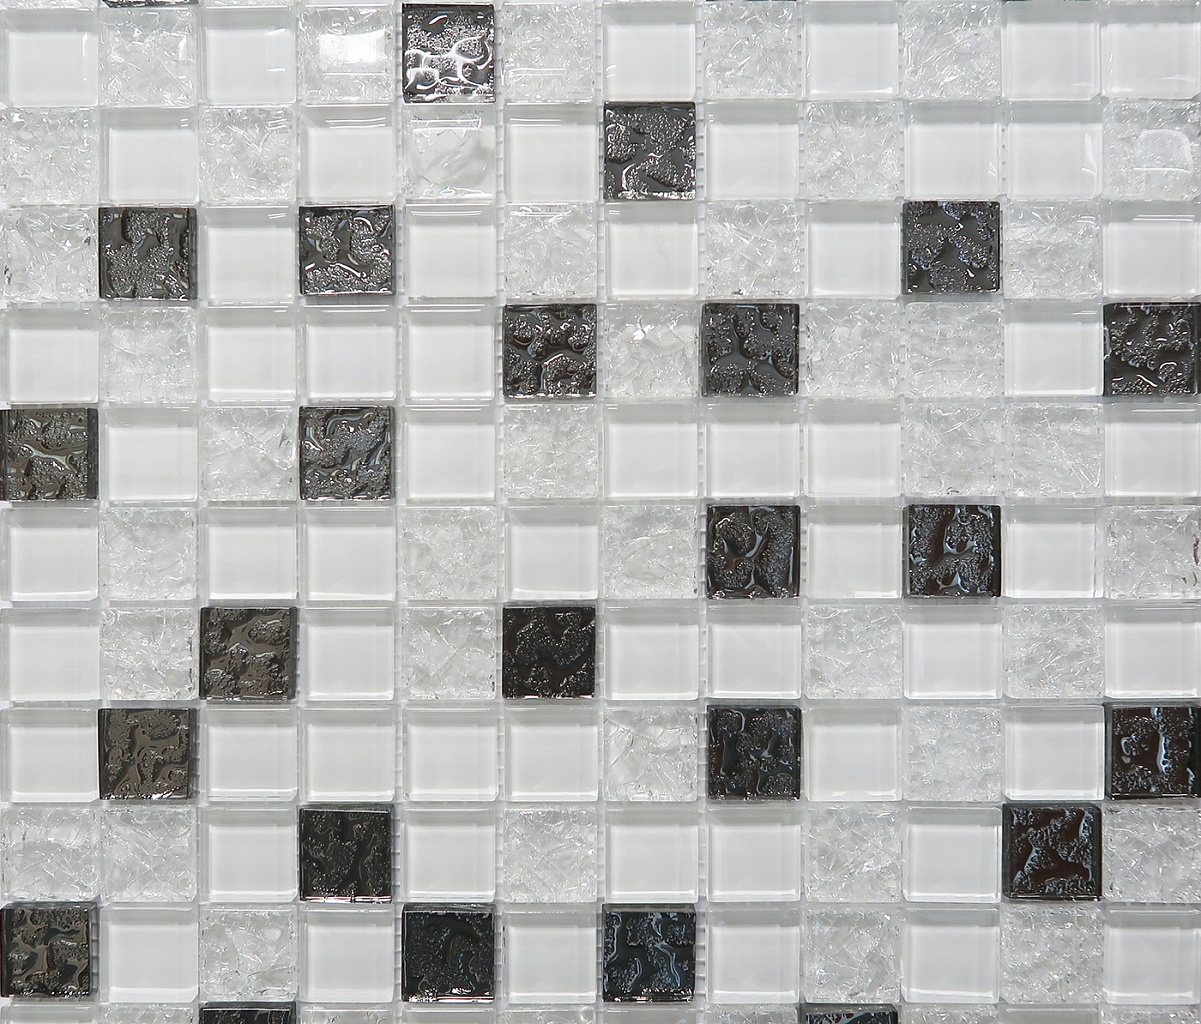 Купить Mosaic Glass White DW7MGW00 Декор 300х300 (6 шт в уп) в Москве, Реутове Химках и Балашихе